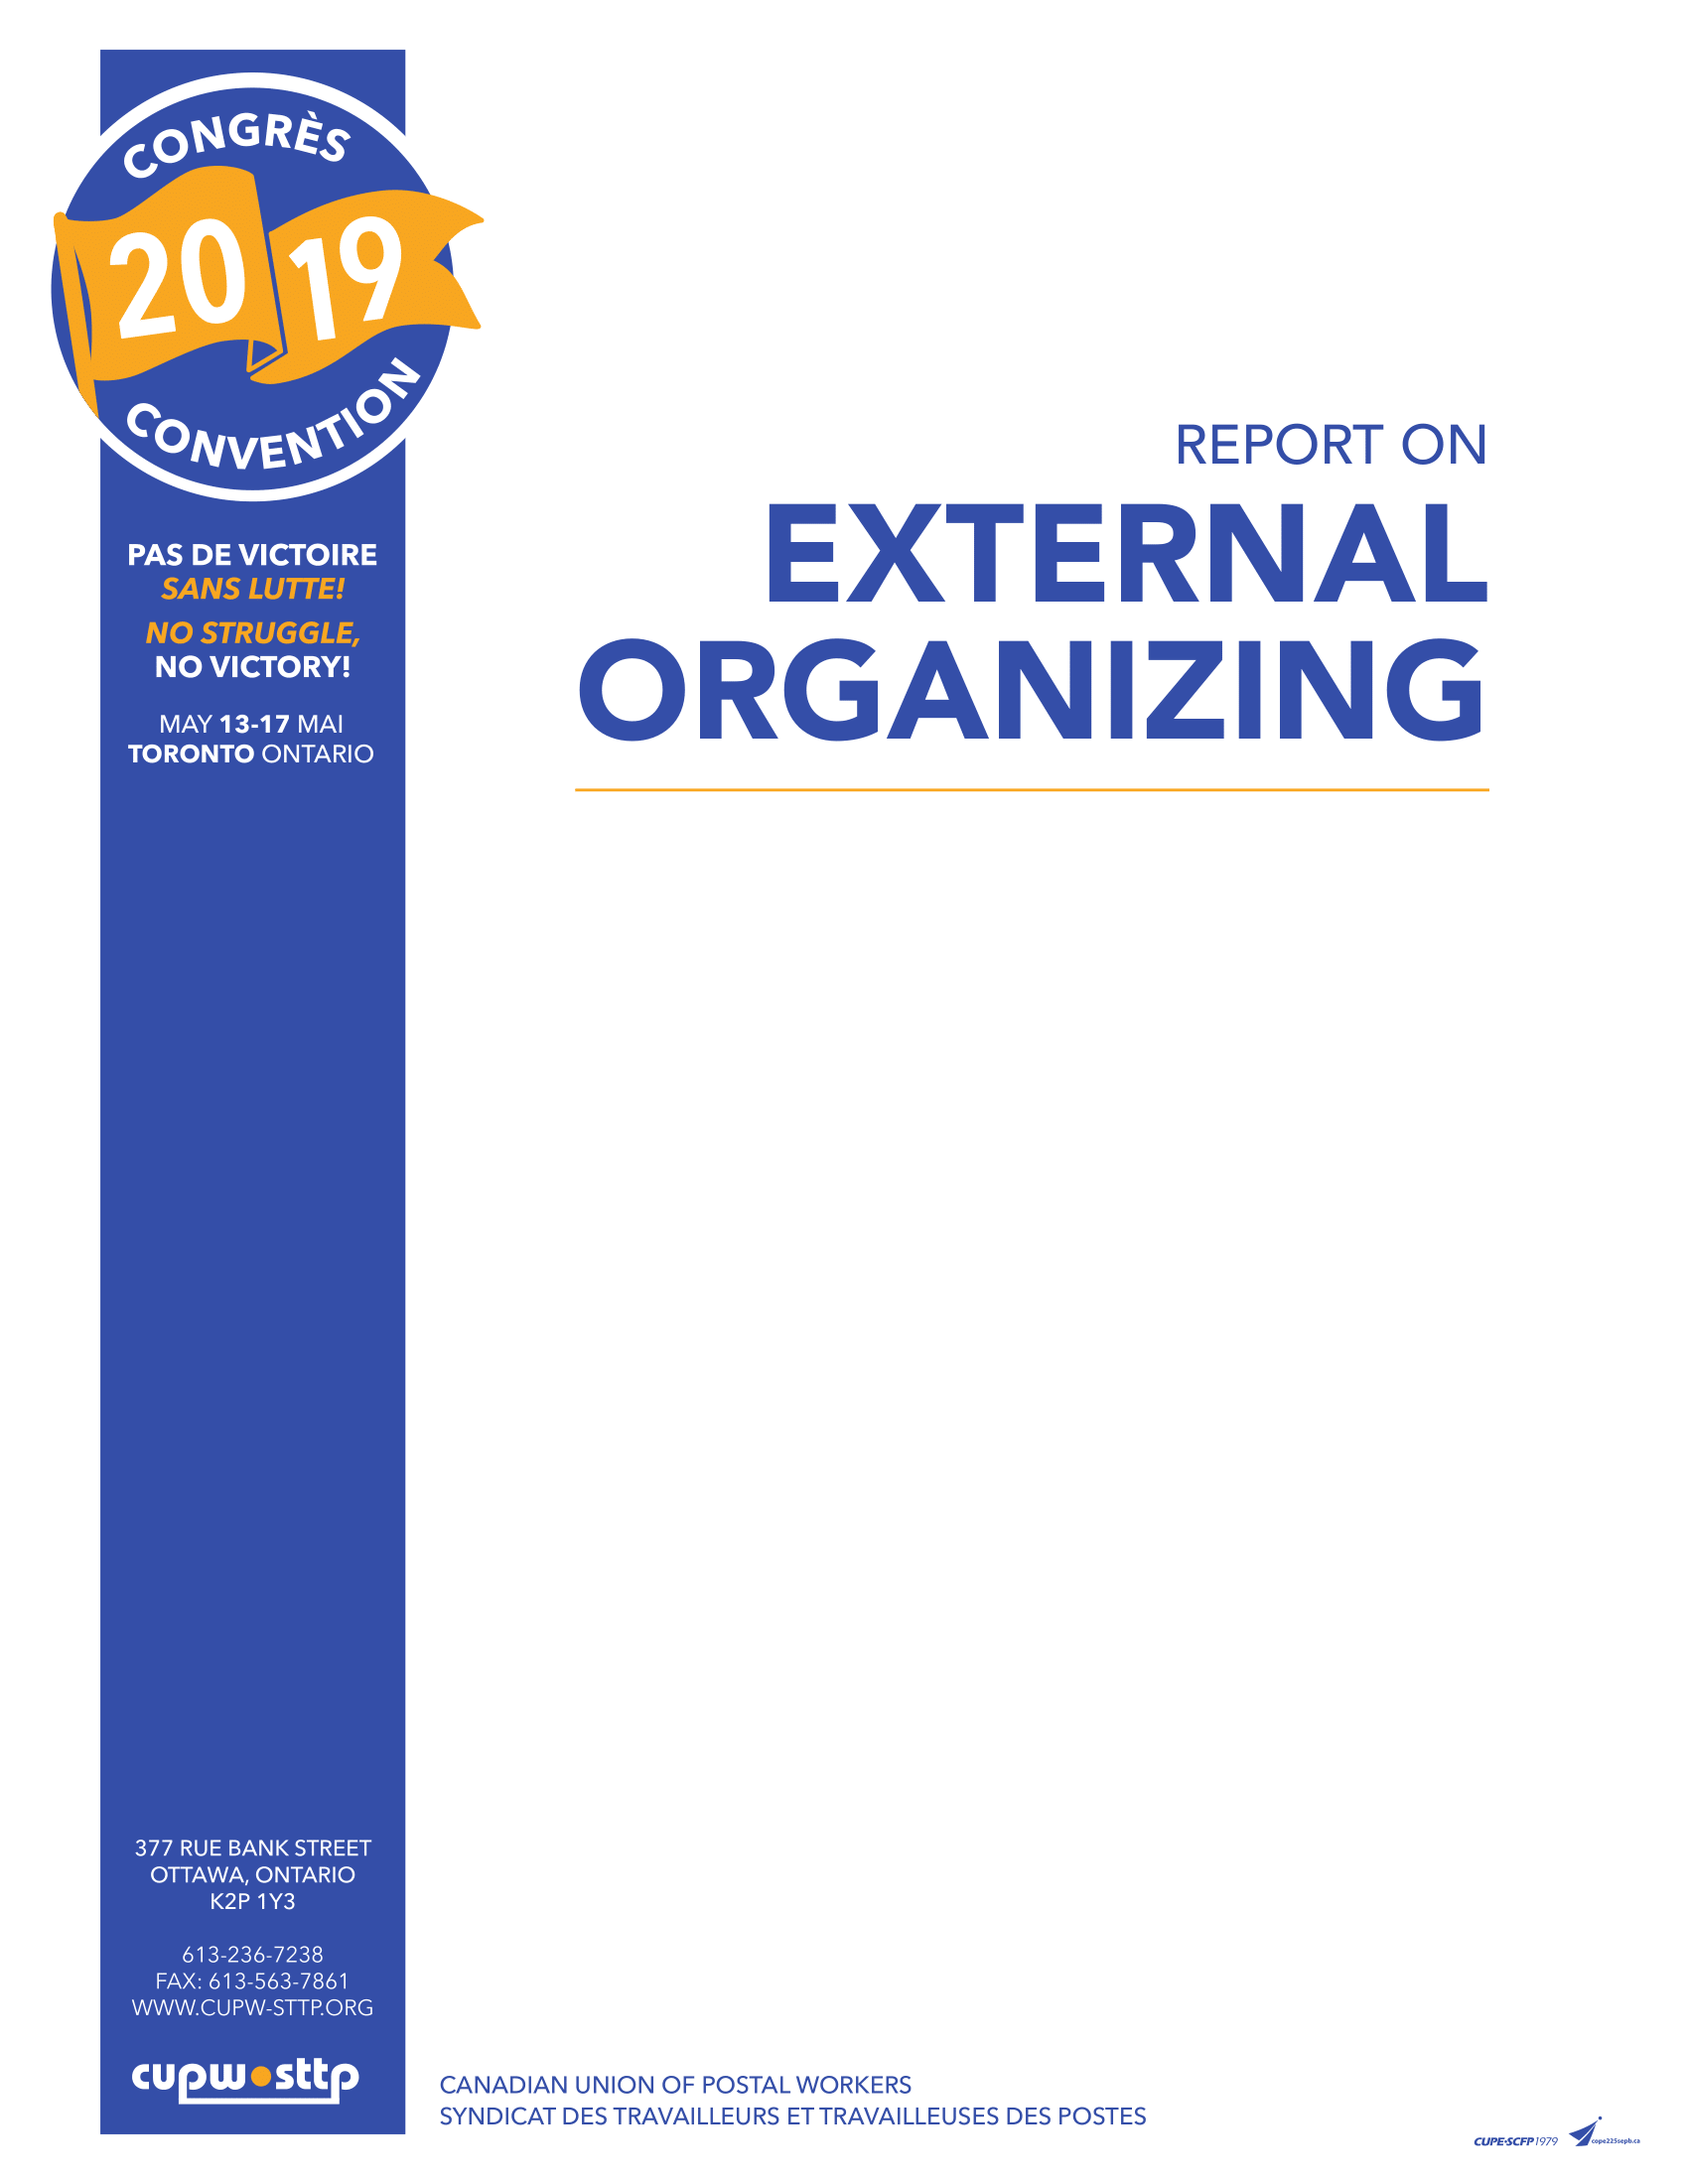 Report on External Organizing (2019)